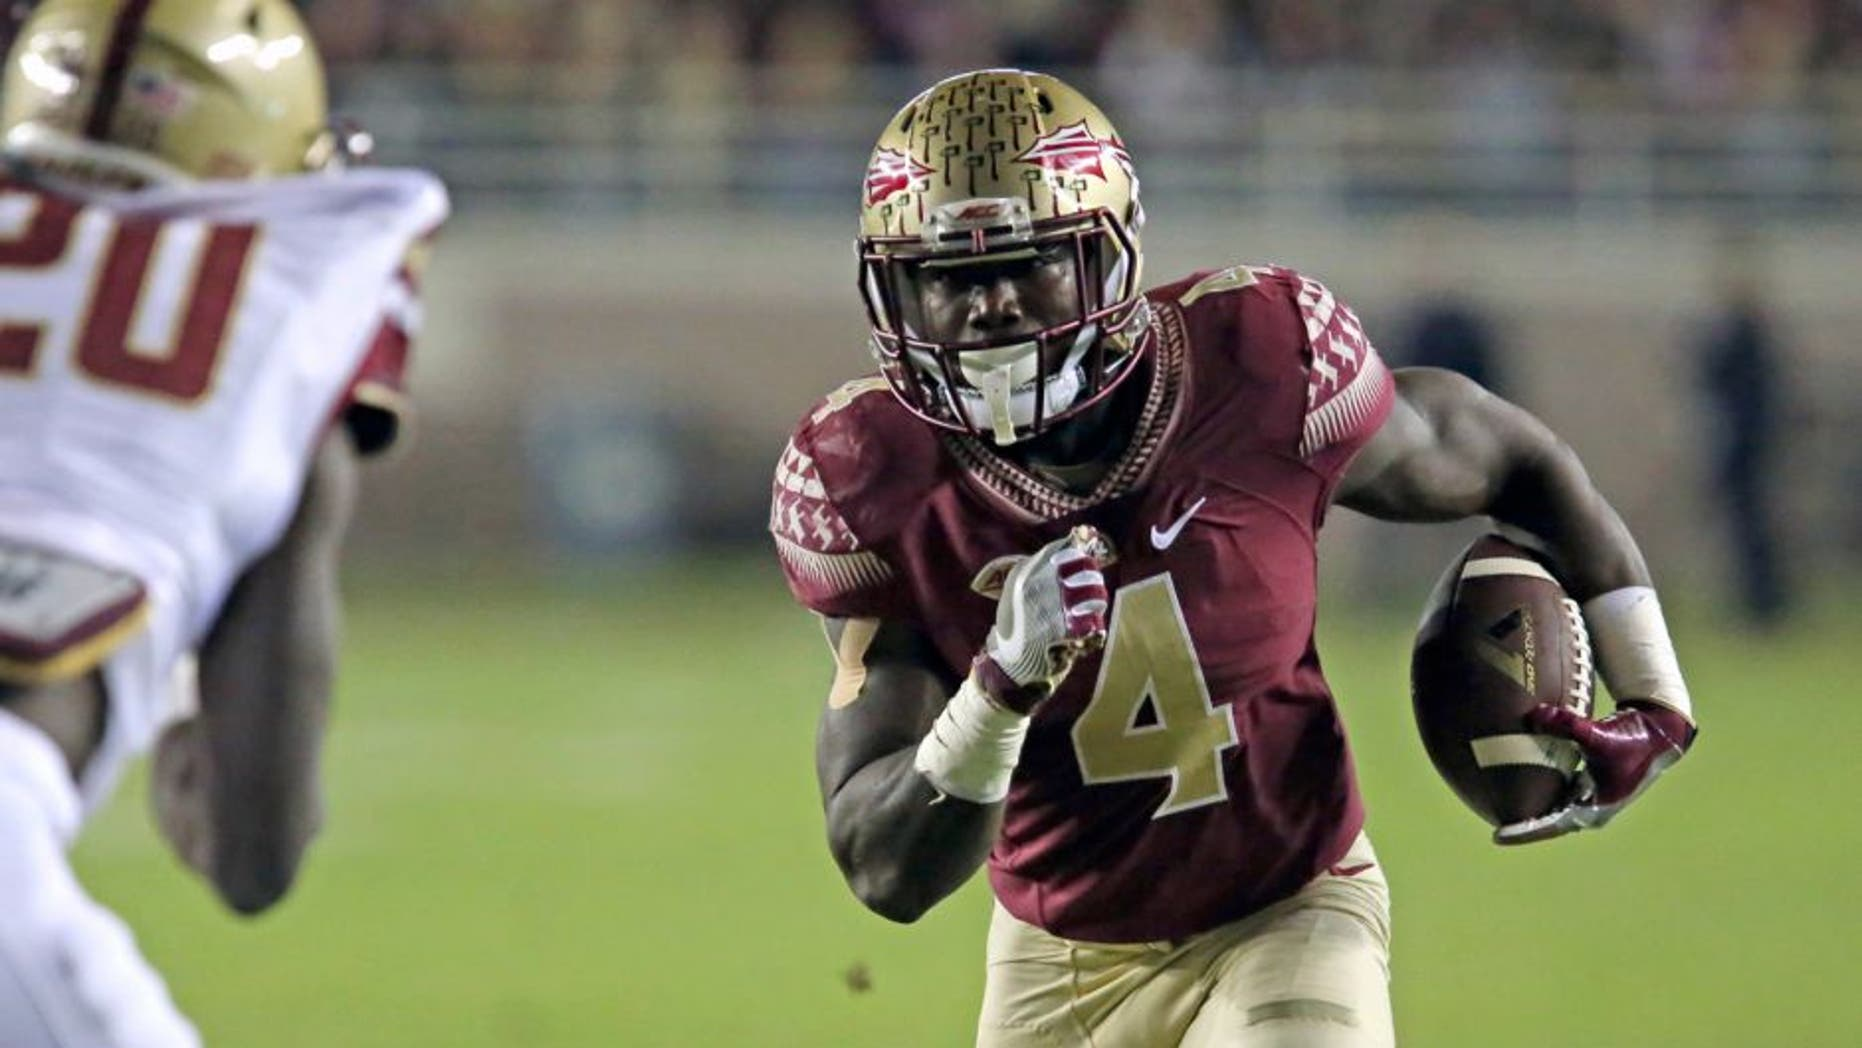 Florida State's Dalvin Cook picks up yardage as Boston College's defender Isaac Yiadom moves in for the tackle in the first half of an NCAA college football game, Friday, Nov. 11, 2016, in Tallahassee, Fla. (AP Photo/Steve Cannon)